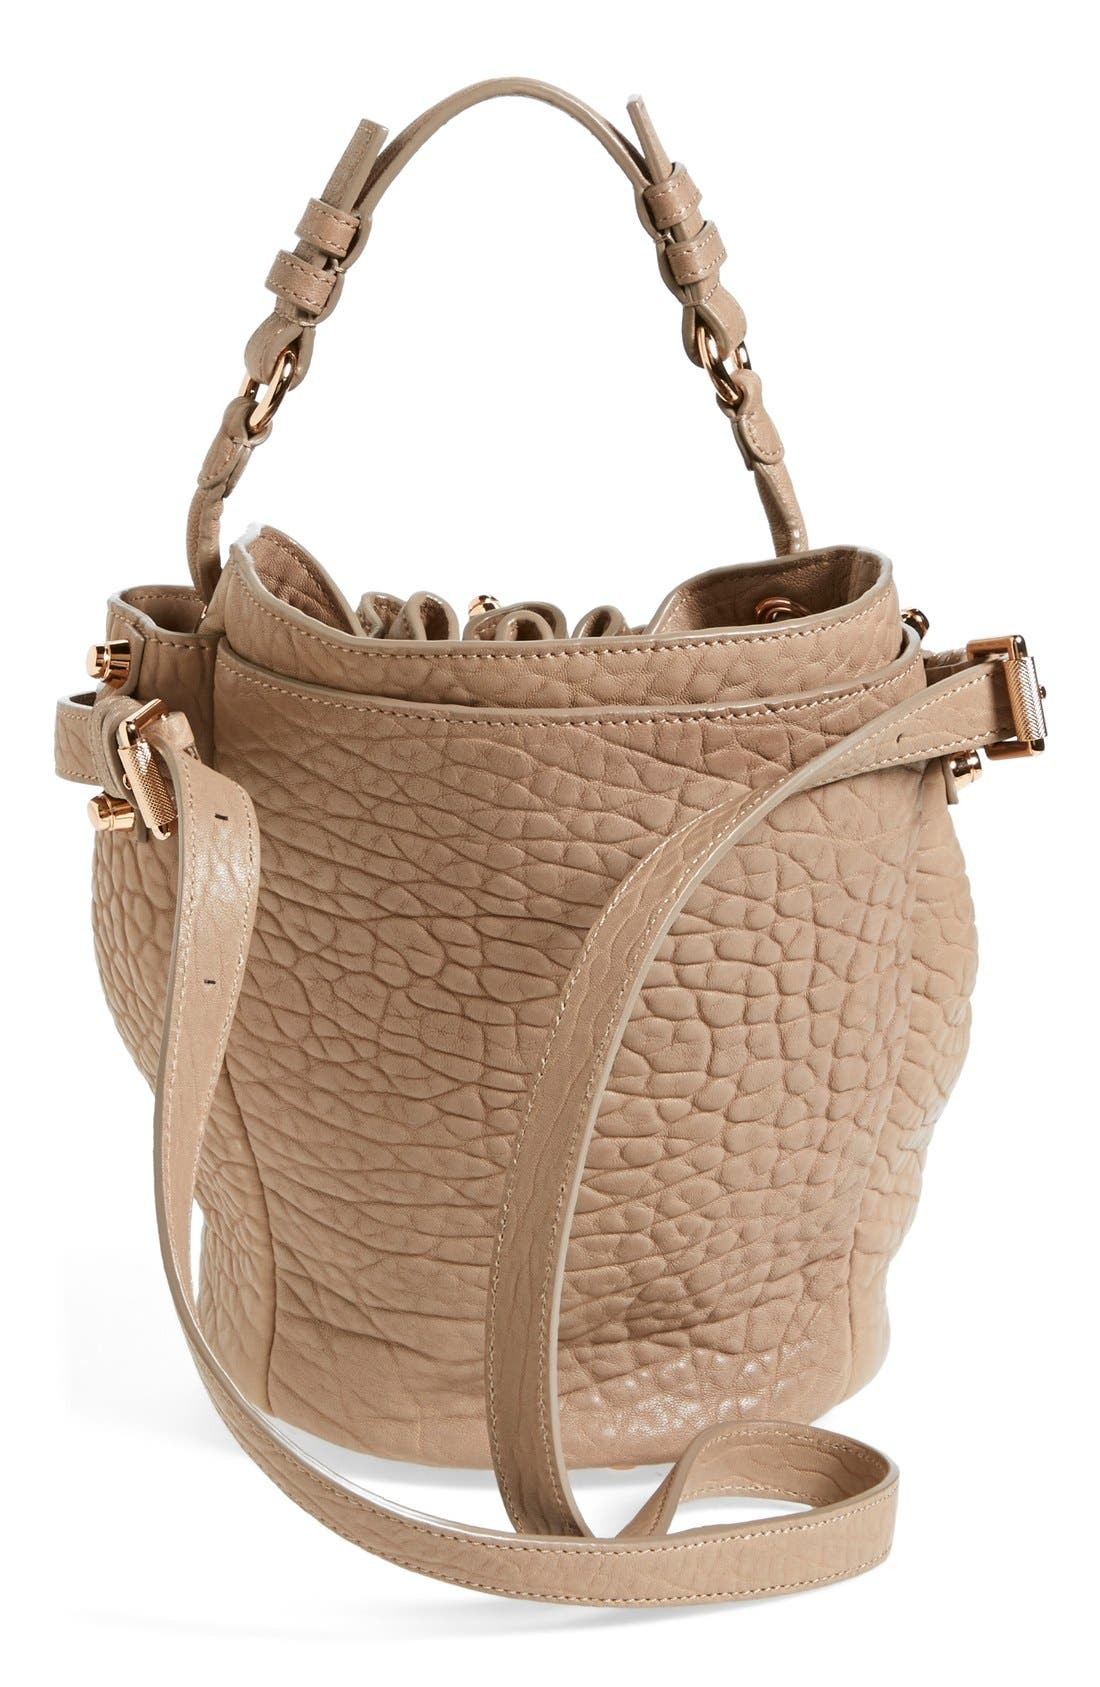 'Small Diego - Rose Gold' Leather Bucket Bag,                             Alternate thumbnail 4, color,                             250